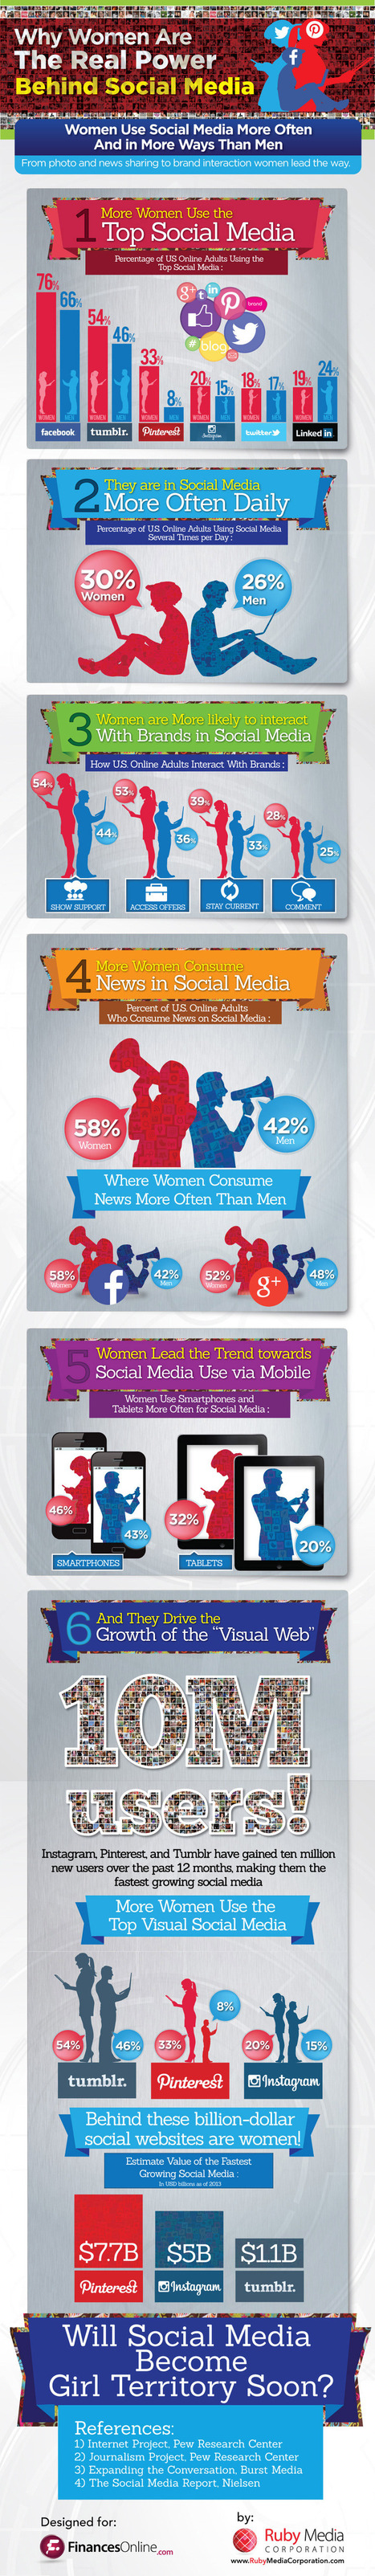 Why Women Are the Real Power Behind Social Media | Formación Digital | Scoop.it